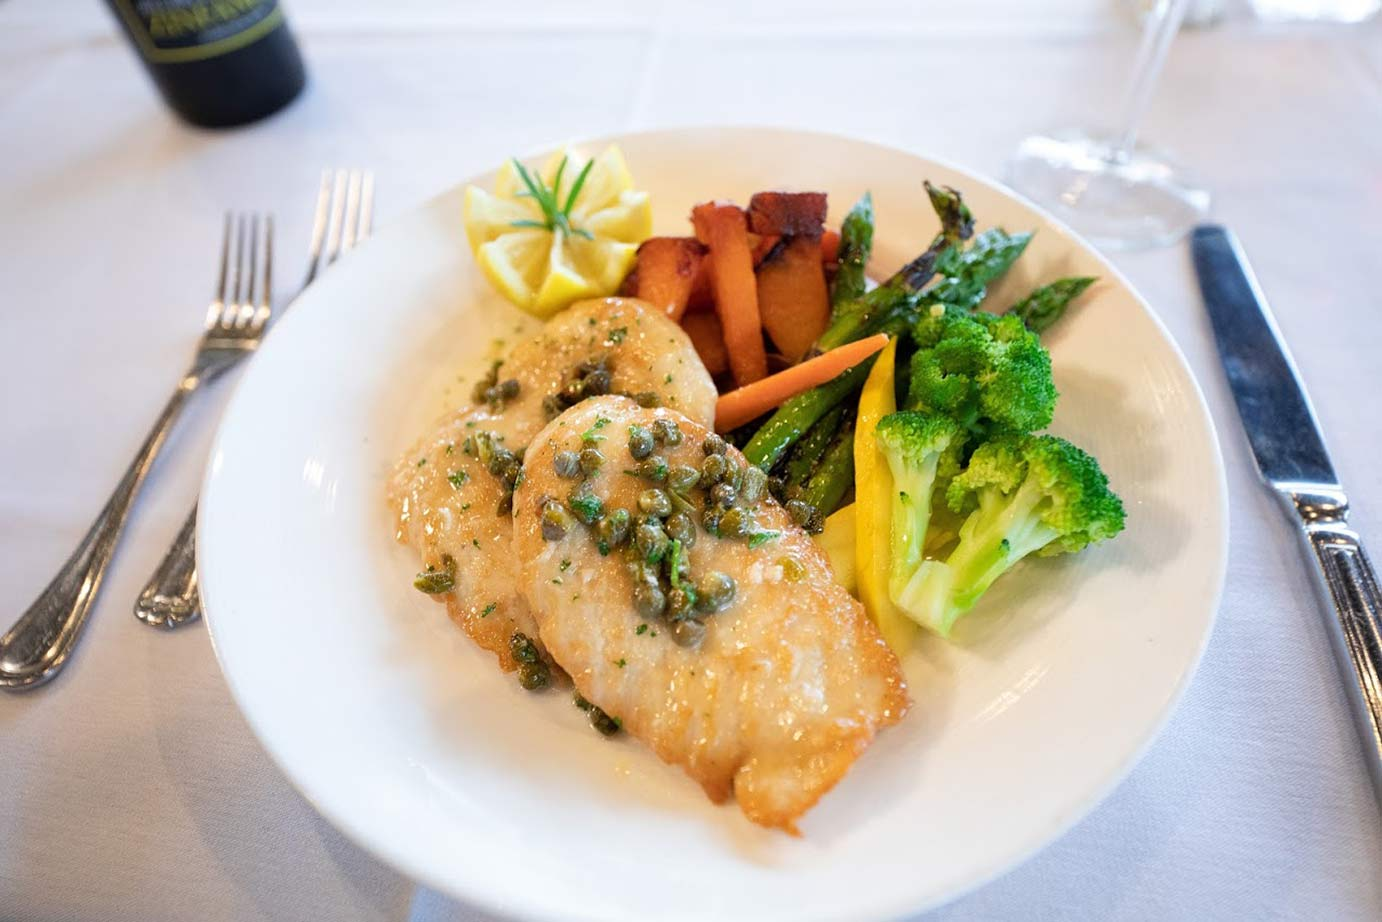 photo of chicken fillet with vegetables